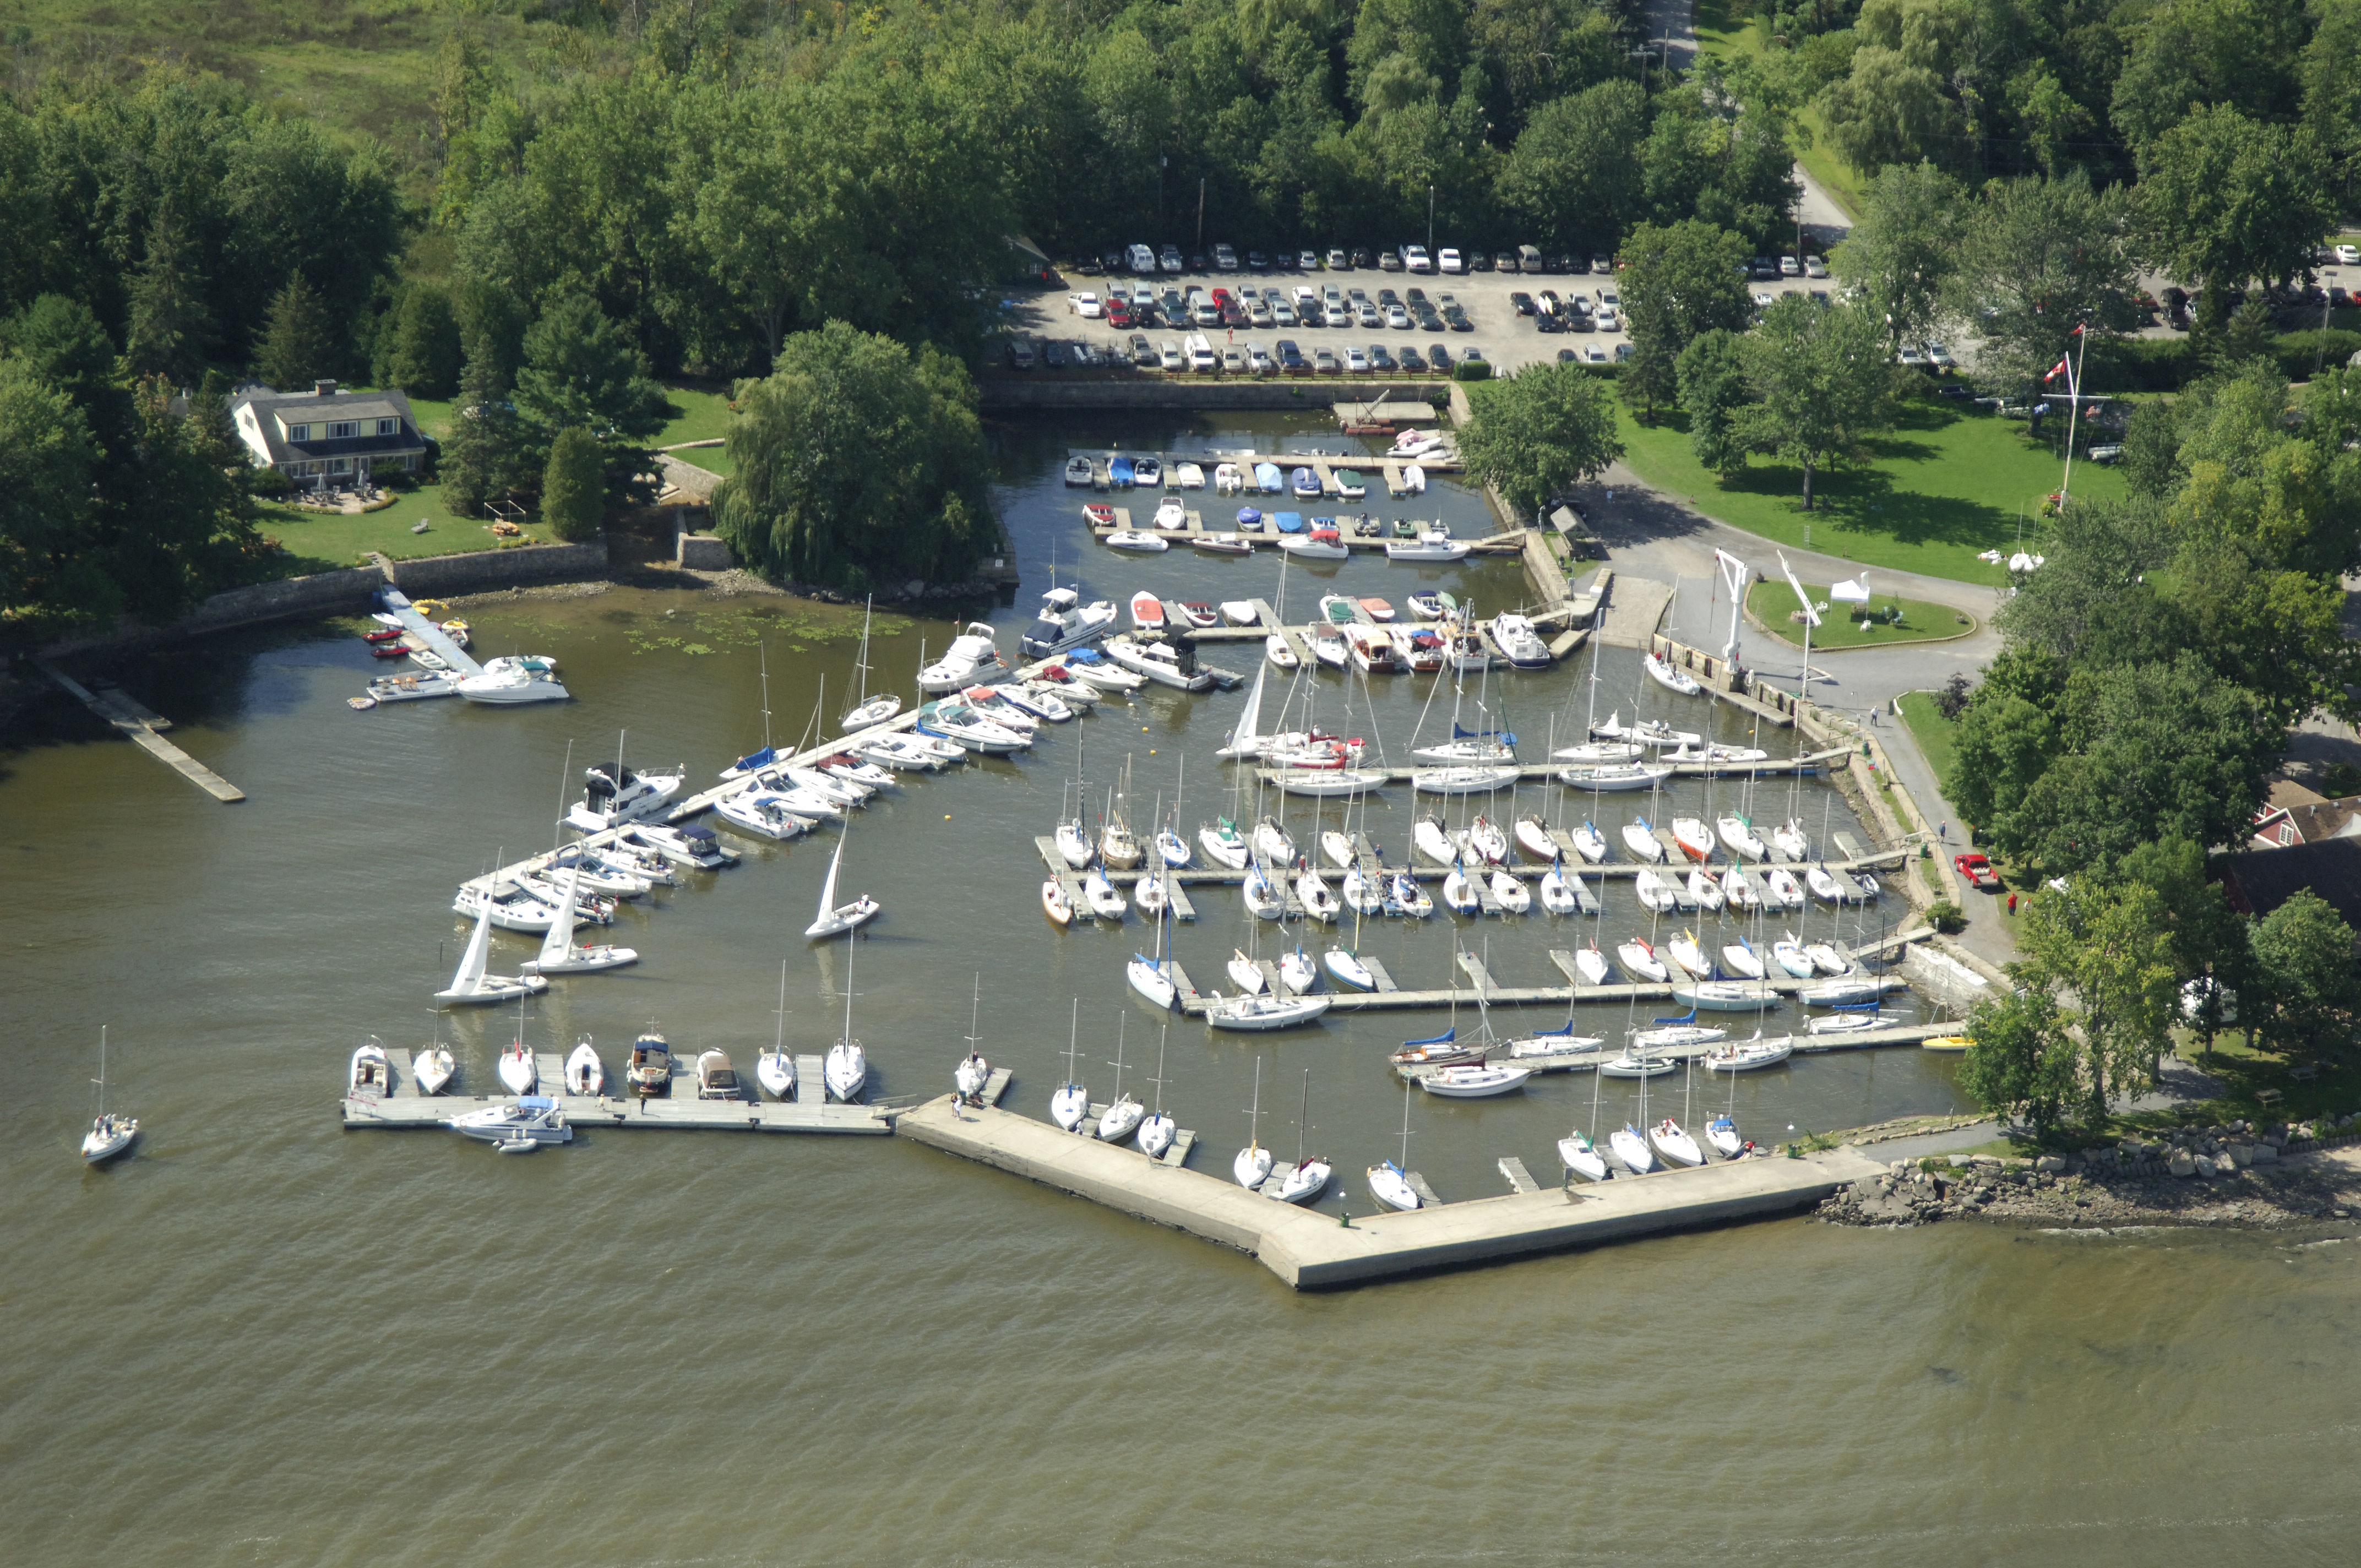 North hudson yacht club / Latin night clubs in seattle